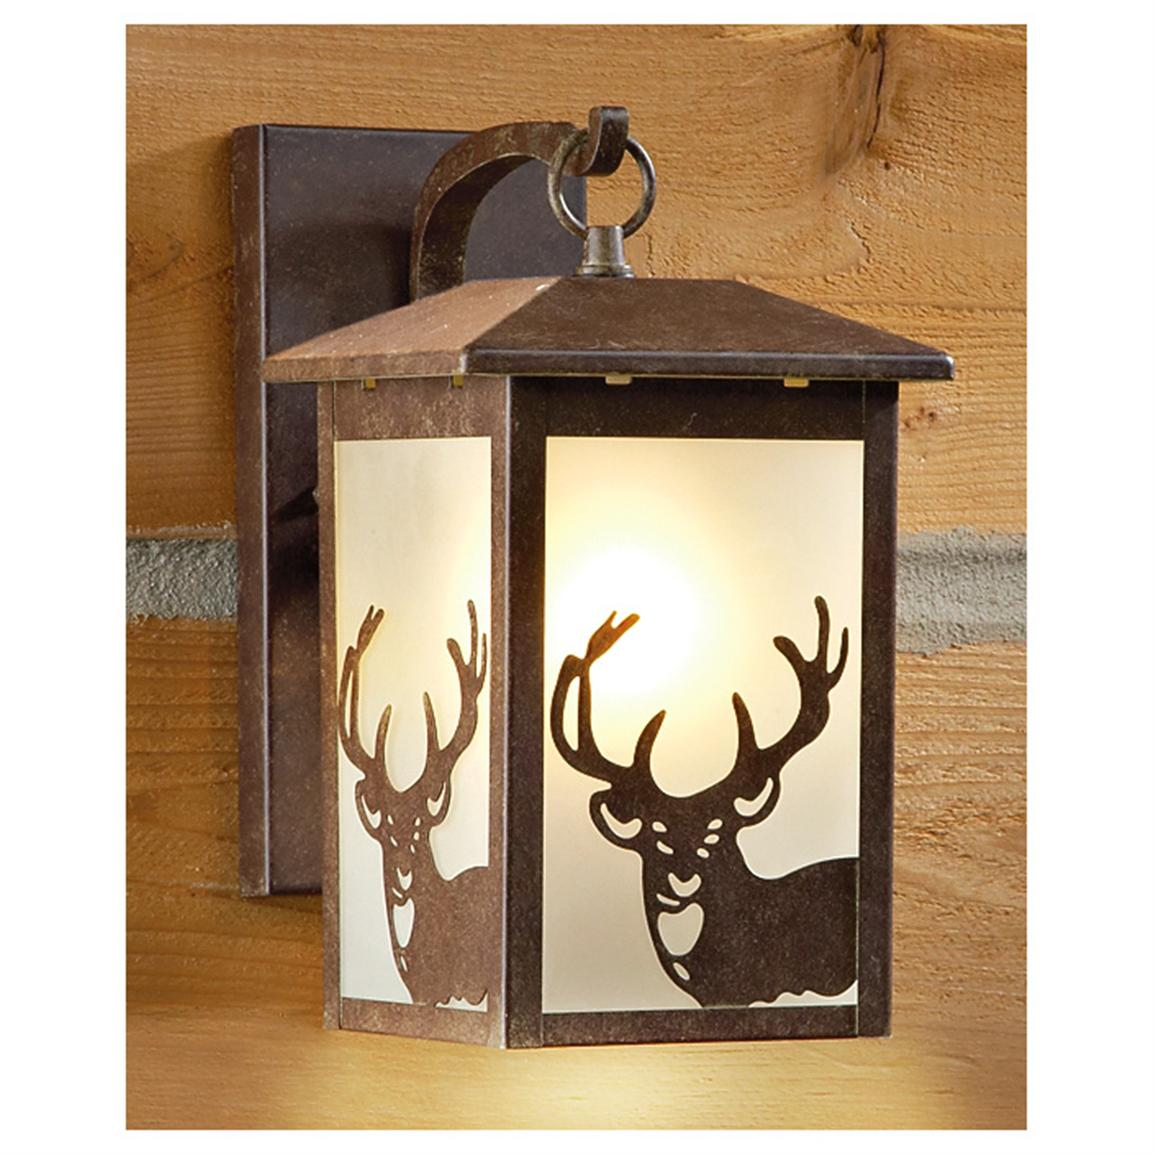 CASTLECREEK™ Rustic Outdoor Wall Lantern Deer  sc 1 st  Sportsmanu0027s Guide & CASTLECREEK™ Rustic Outdoor Wall Lantern - 225944 Solar u0026 Outdoor ...